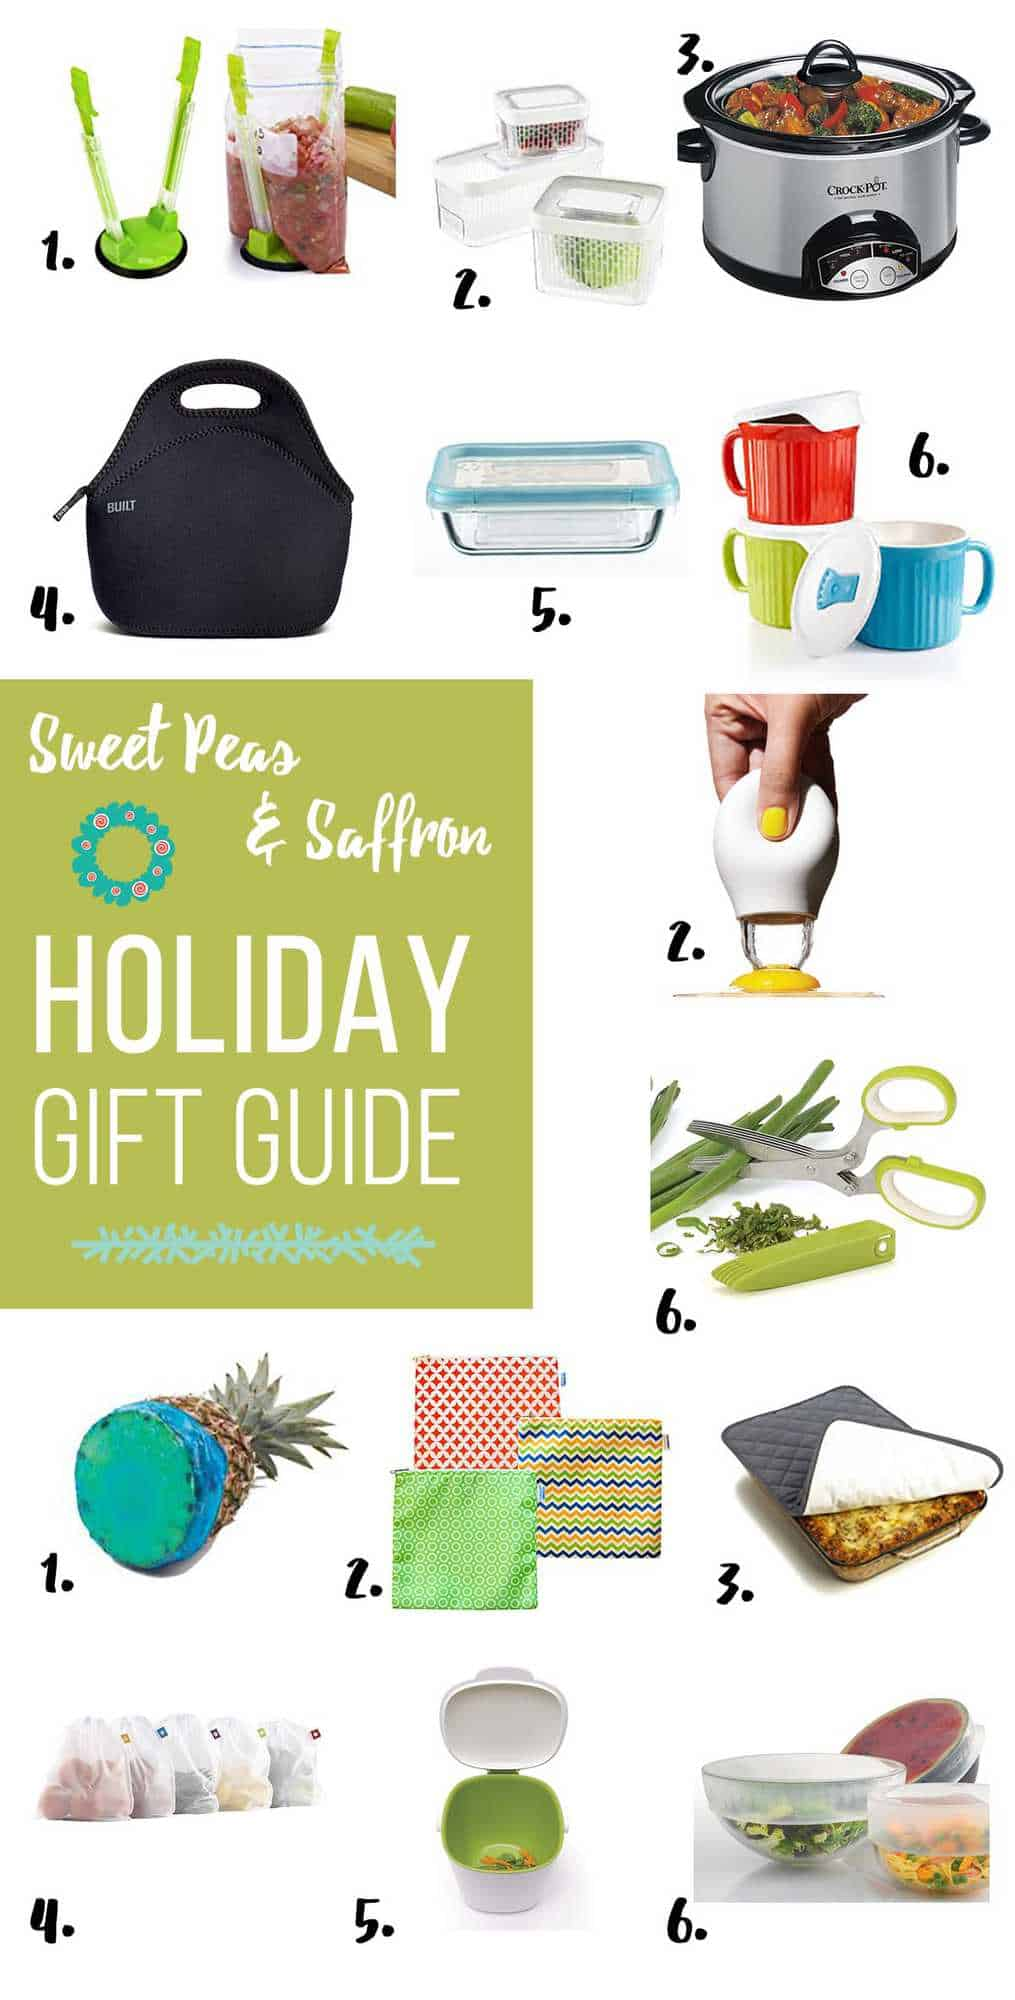 Superieur Holiday Gift Guide 2016! Includes Stocking Stuffers, Meal Prep Gifts, Eco  Friendly Kitchen